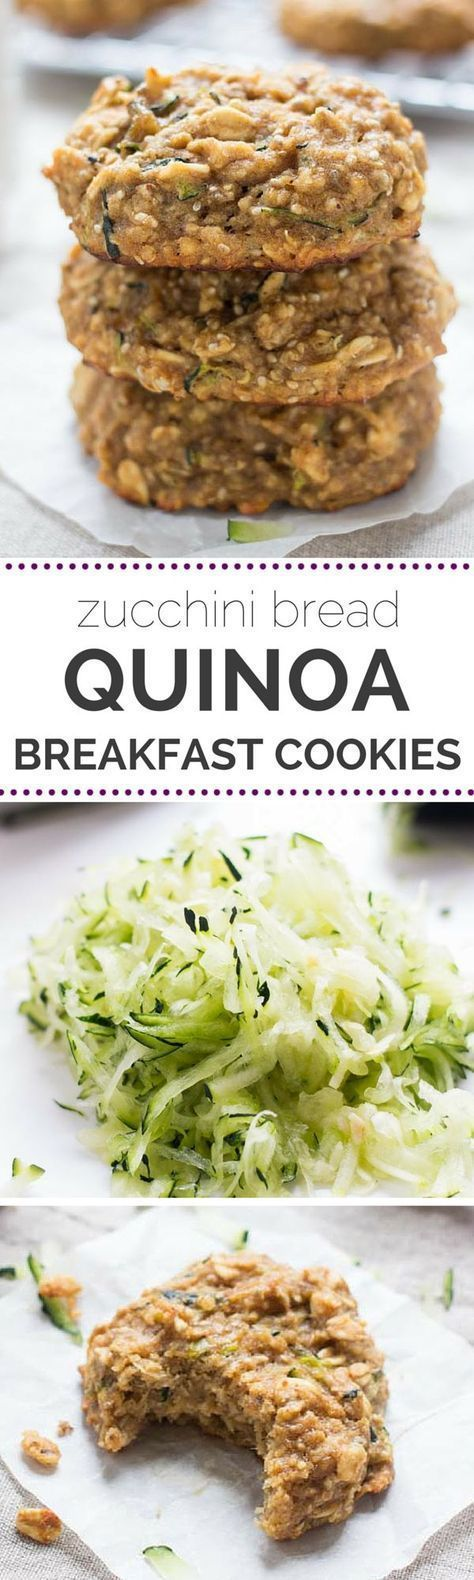 Zucchini Bread Quinoa Breakfast Cookies -